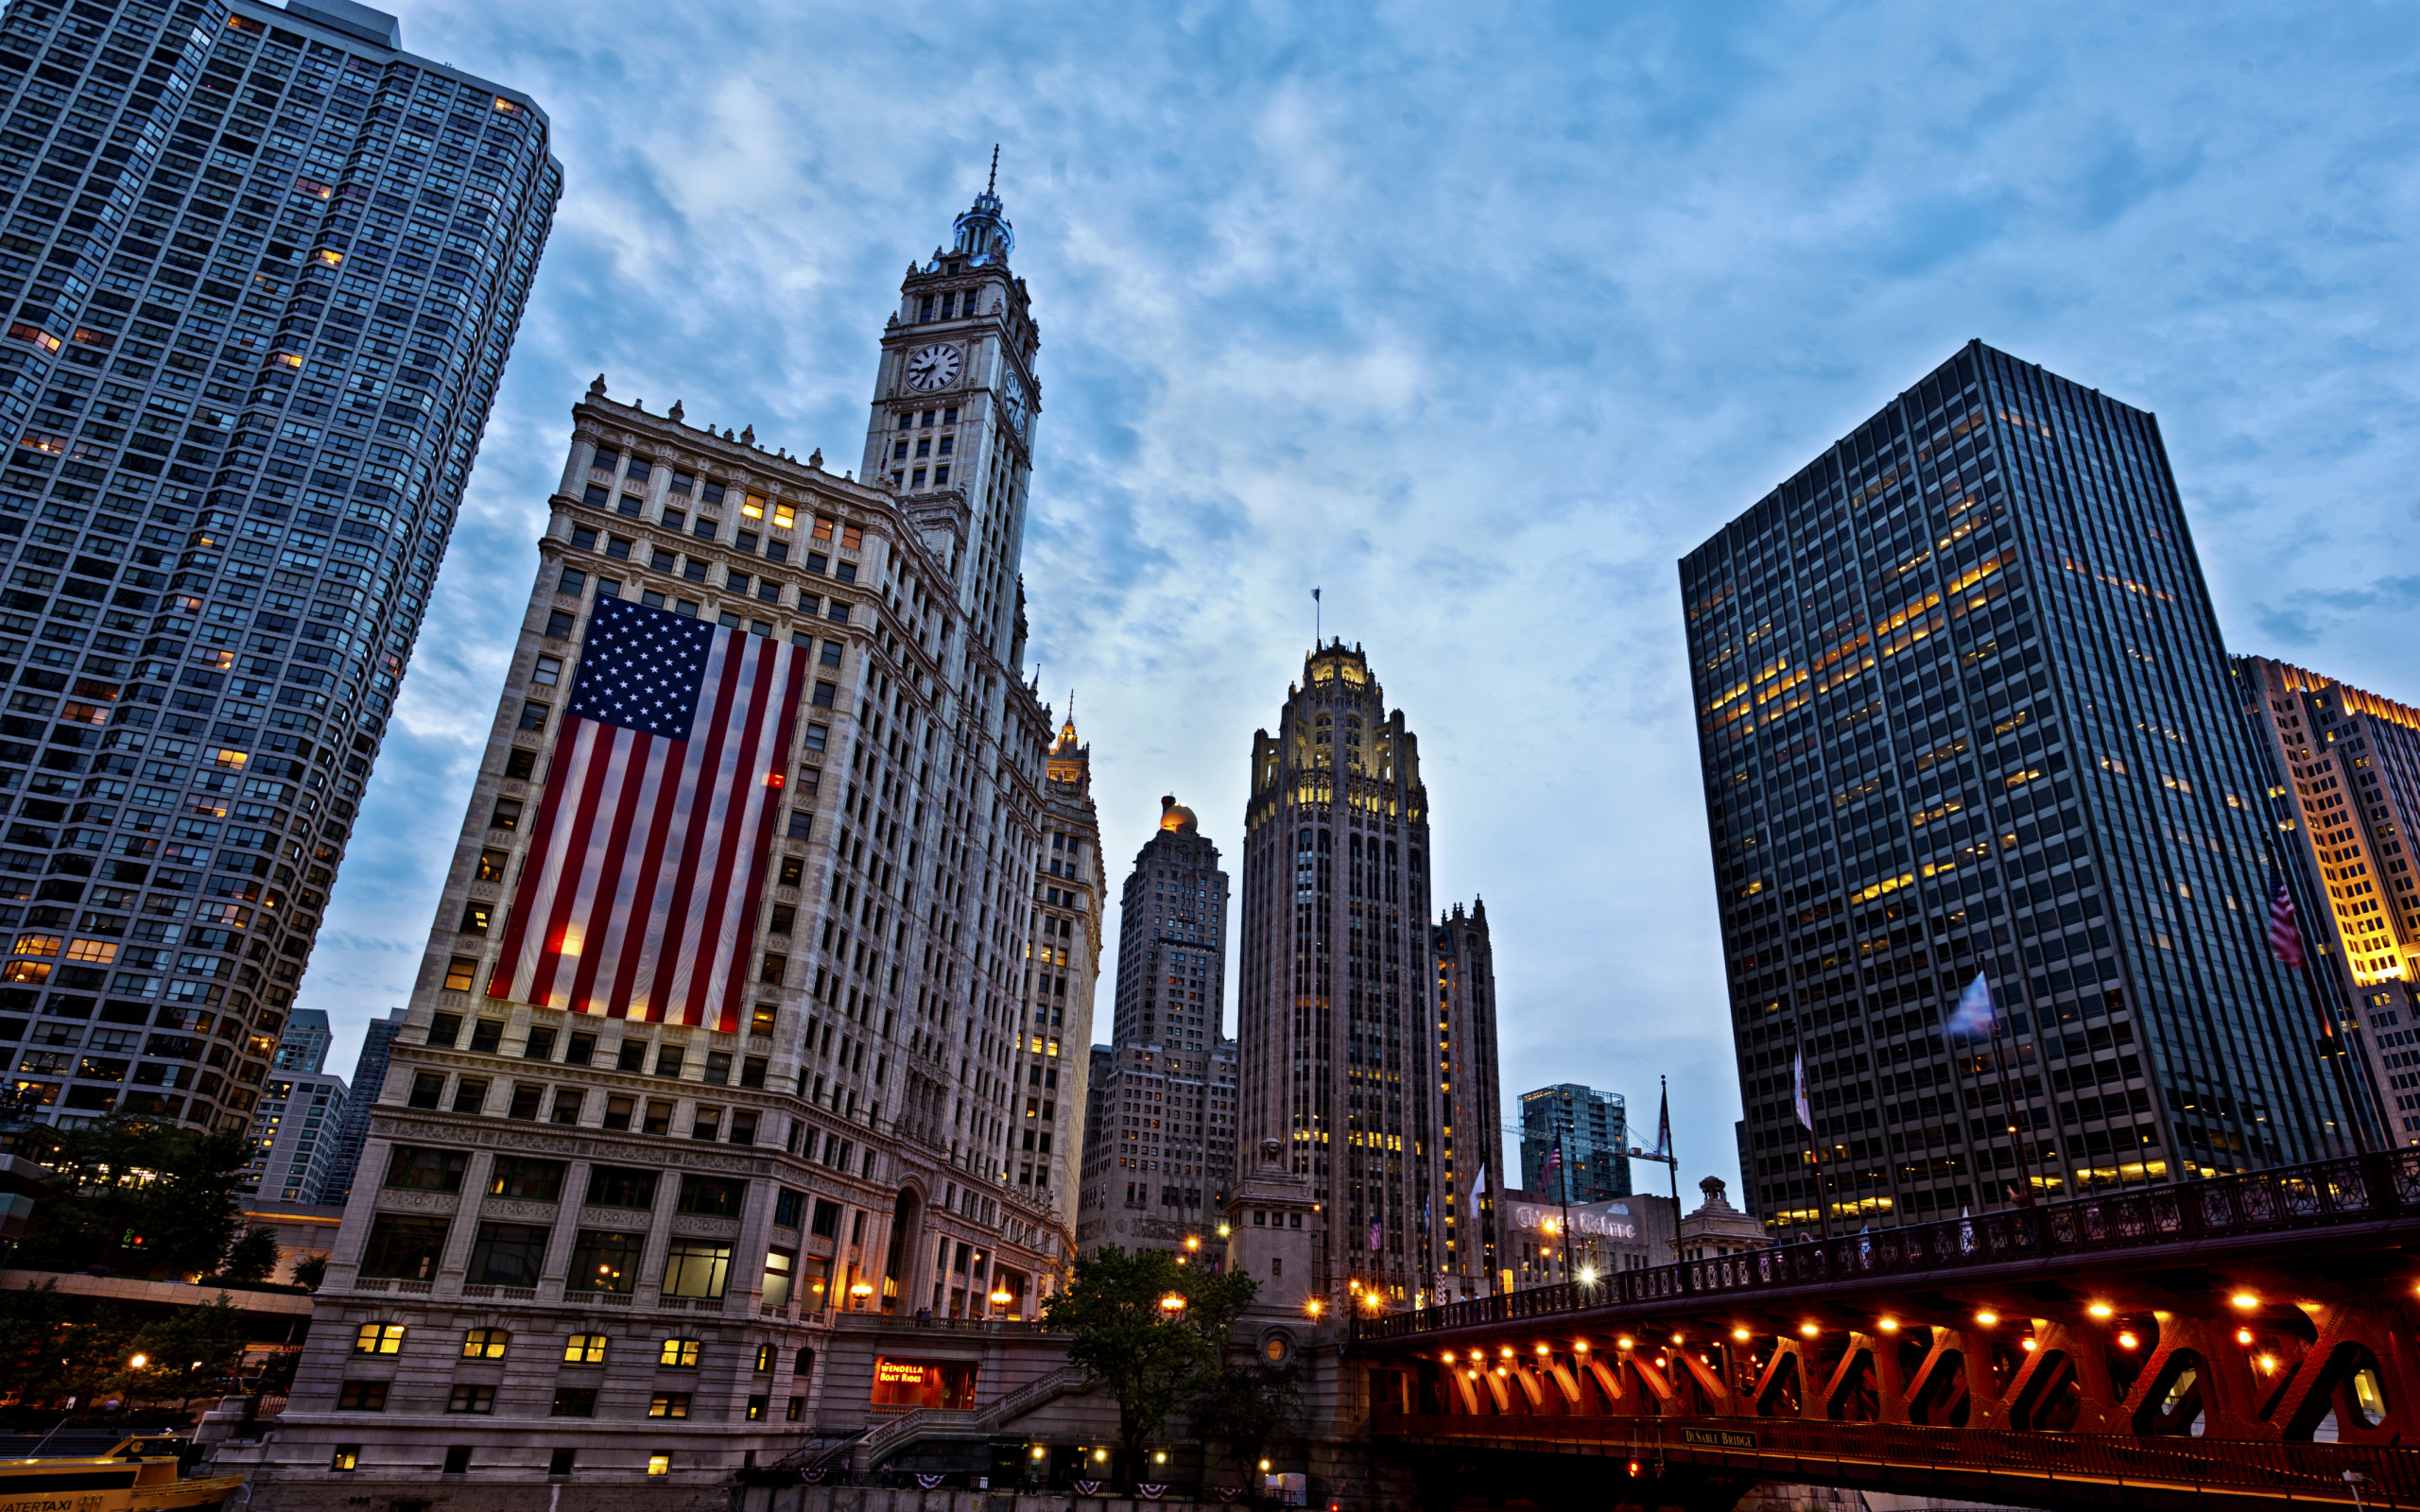 American Flag in Chicago Illinois United States widescreen 2560x1600